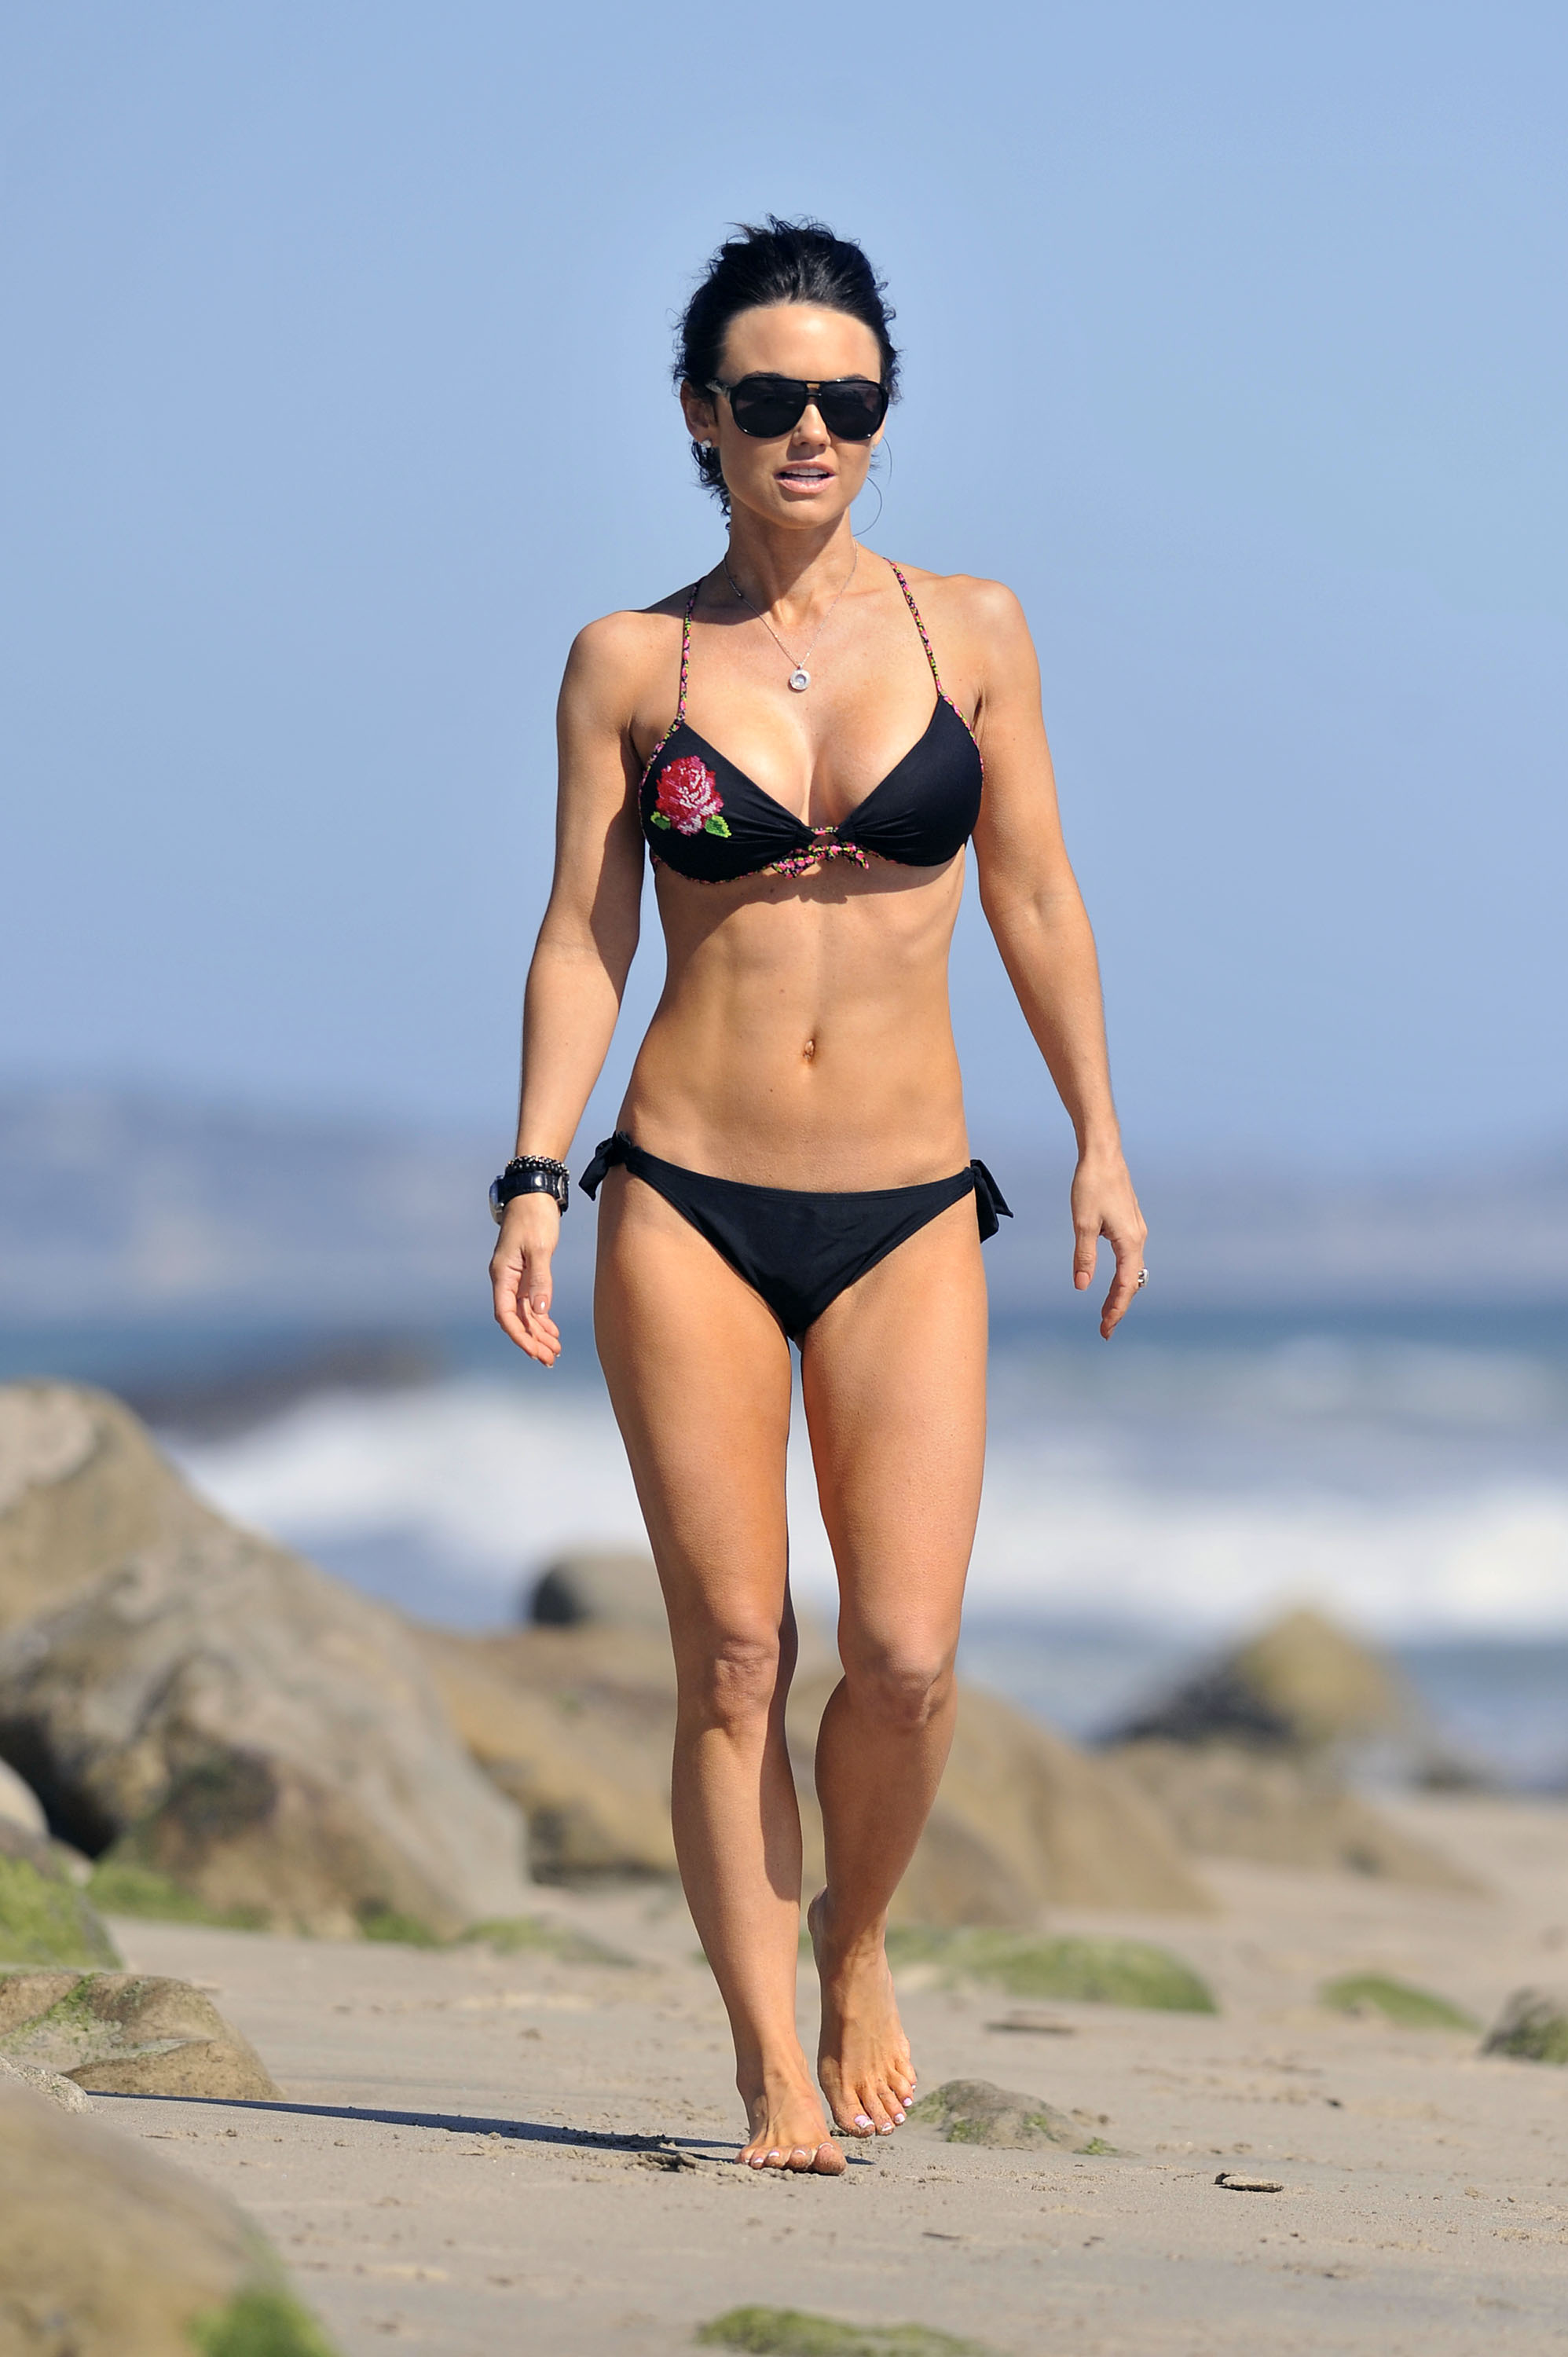 Kelly carlson bikini consider, that